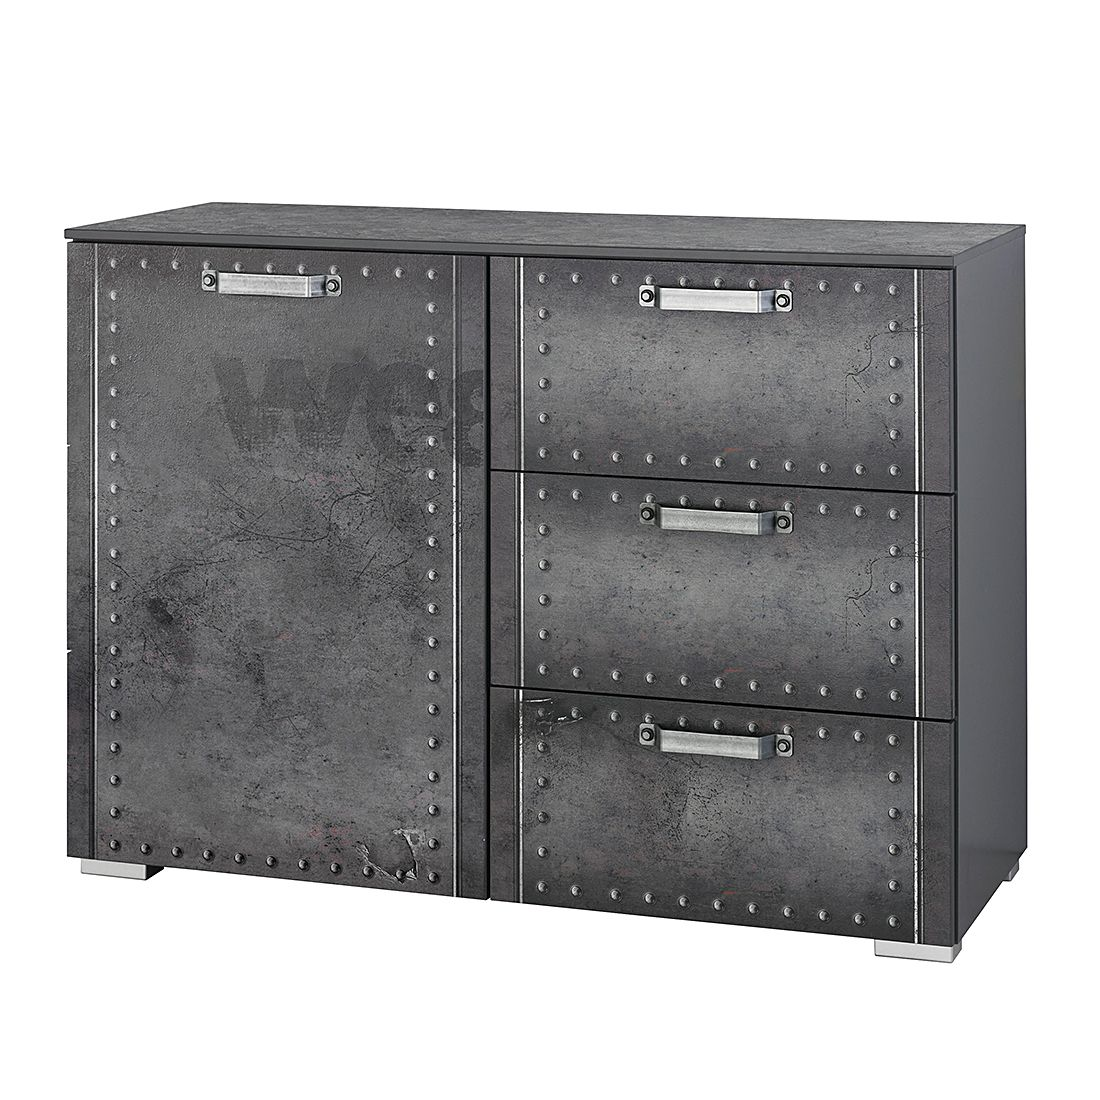 Commode Workbase I - Aspect imprimé industriel / Gris graphite, Rauch Select